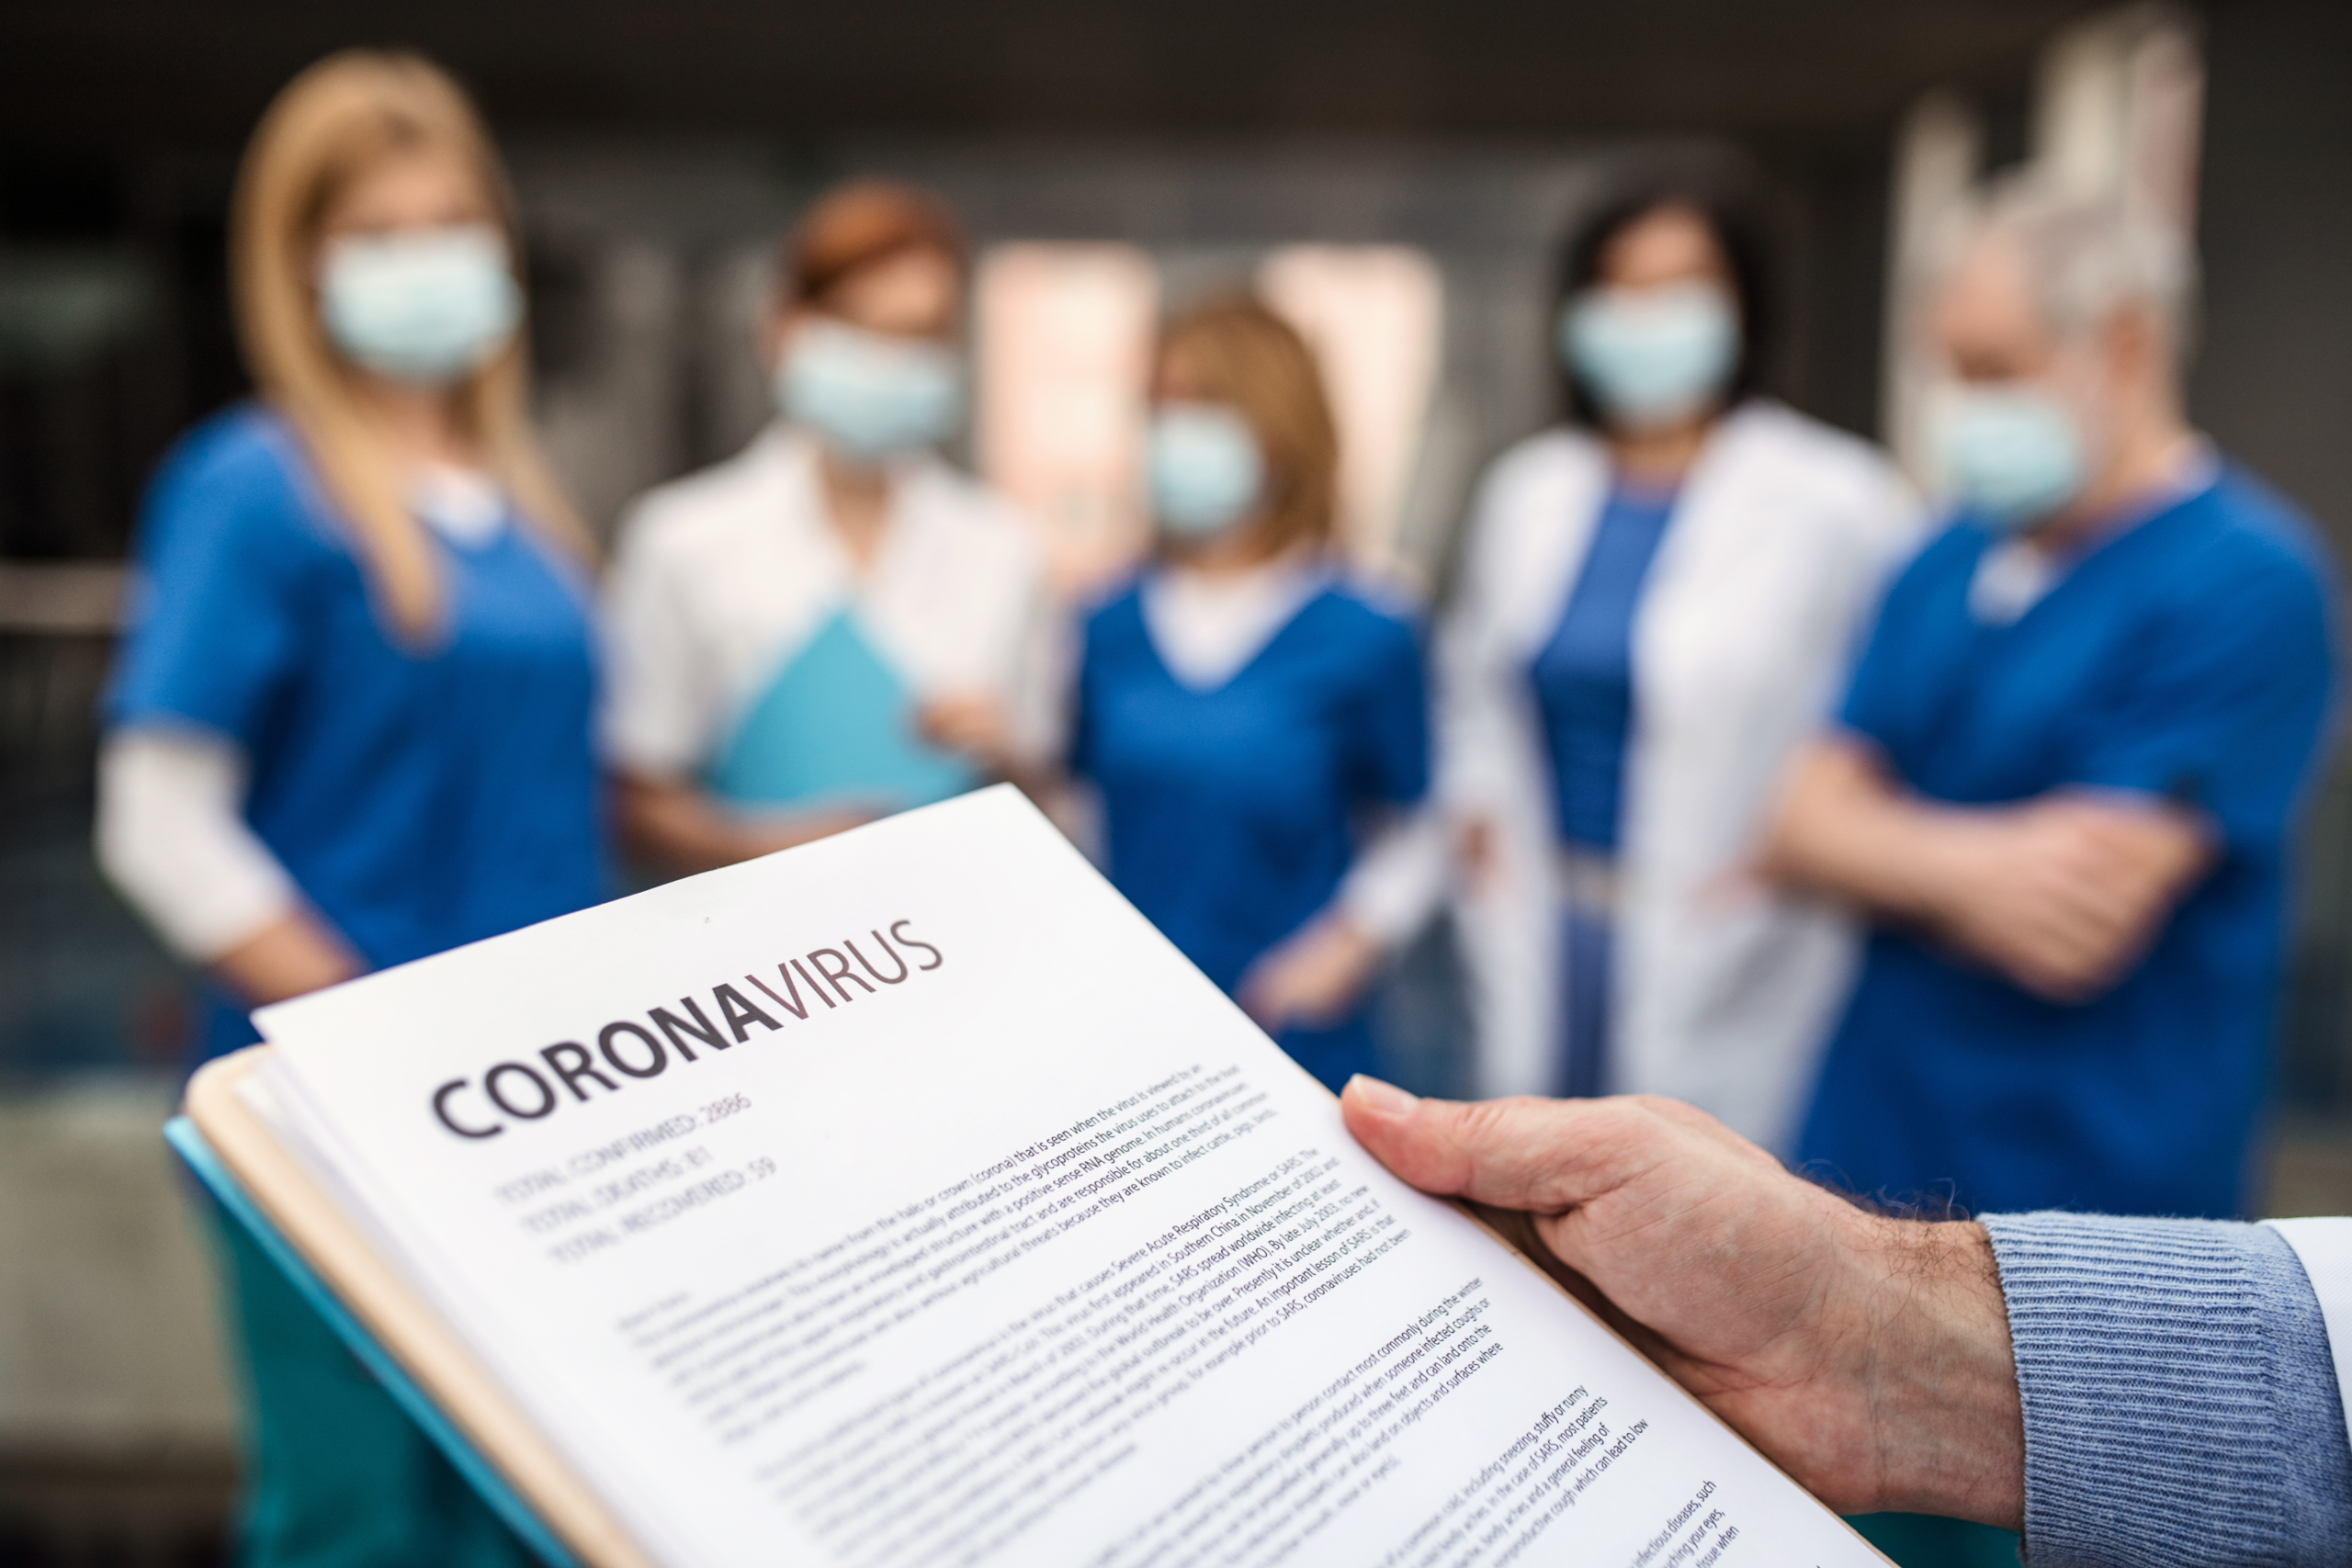 Minimize the COVID-19 Impact on Healthcare Financial Performance